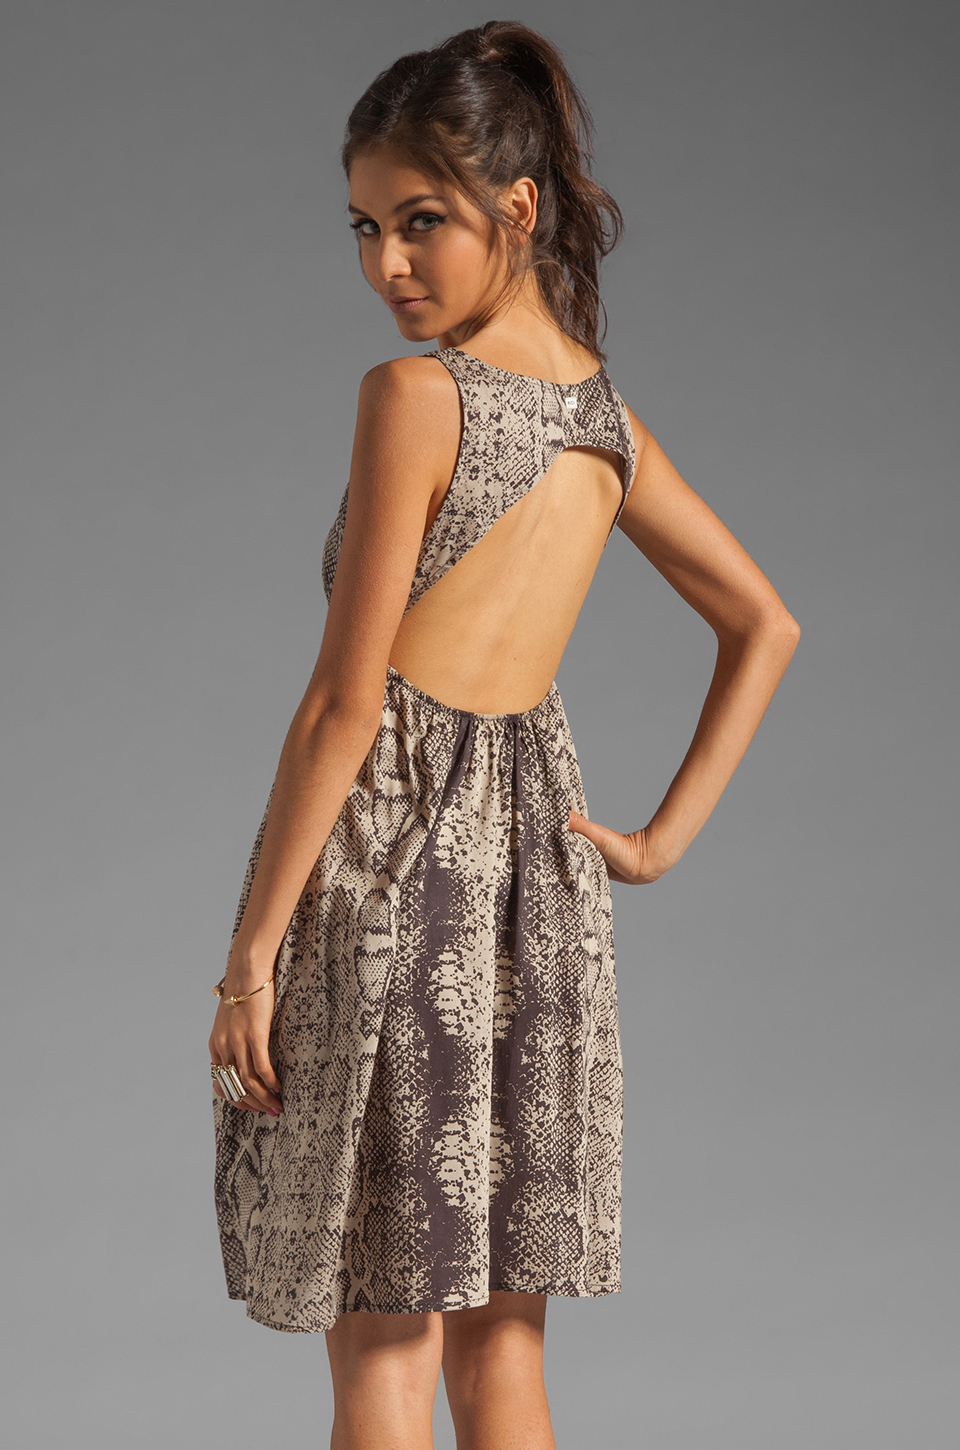 RVCA Drench Cut Out Dress in Feather Grey